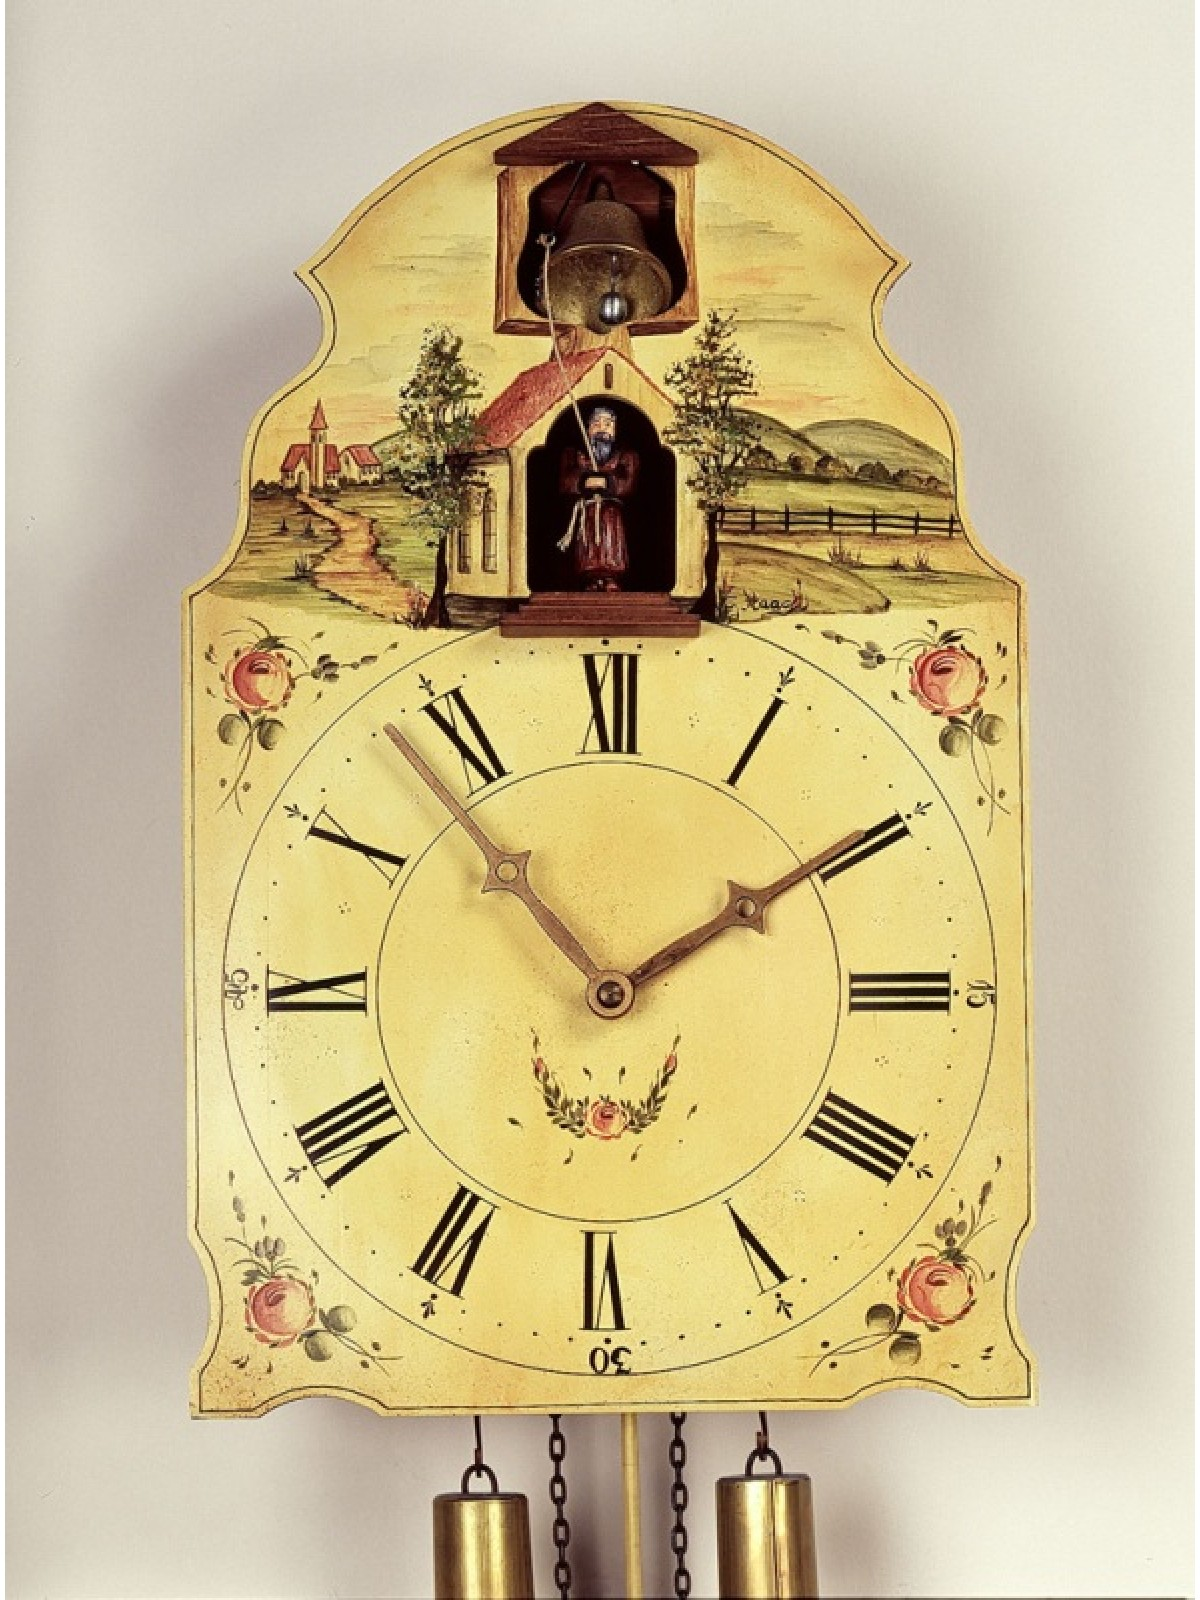 8 Days Shield Clock with Capuchin who is ringing the bells -handpainted-